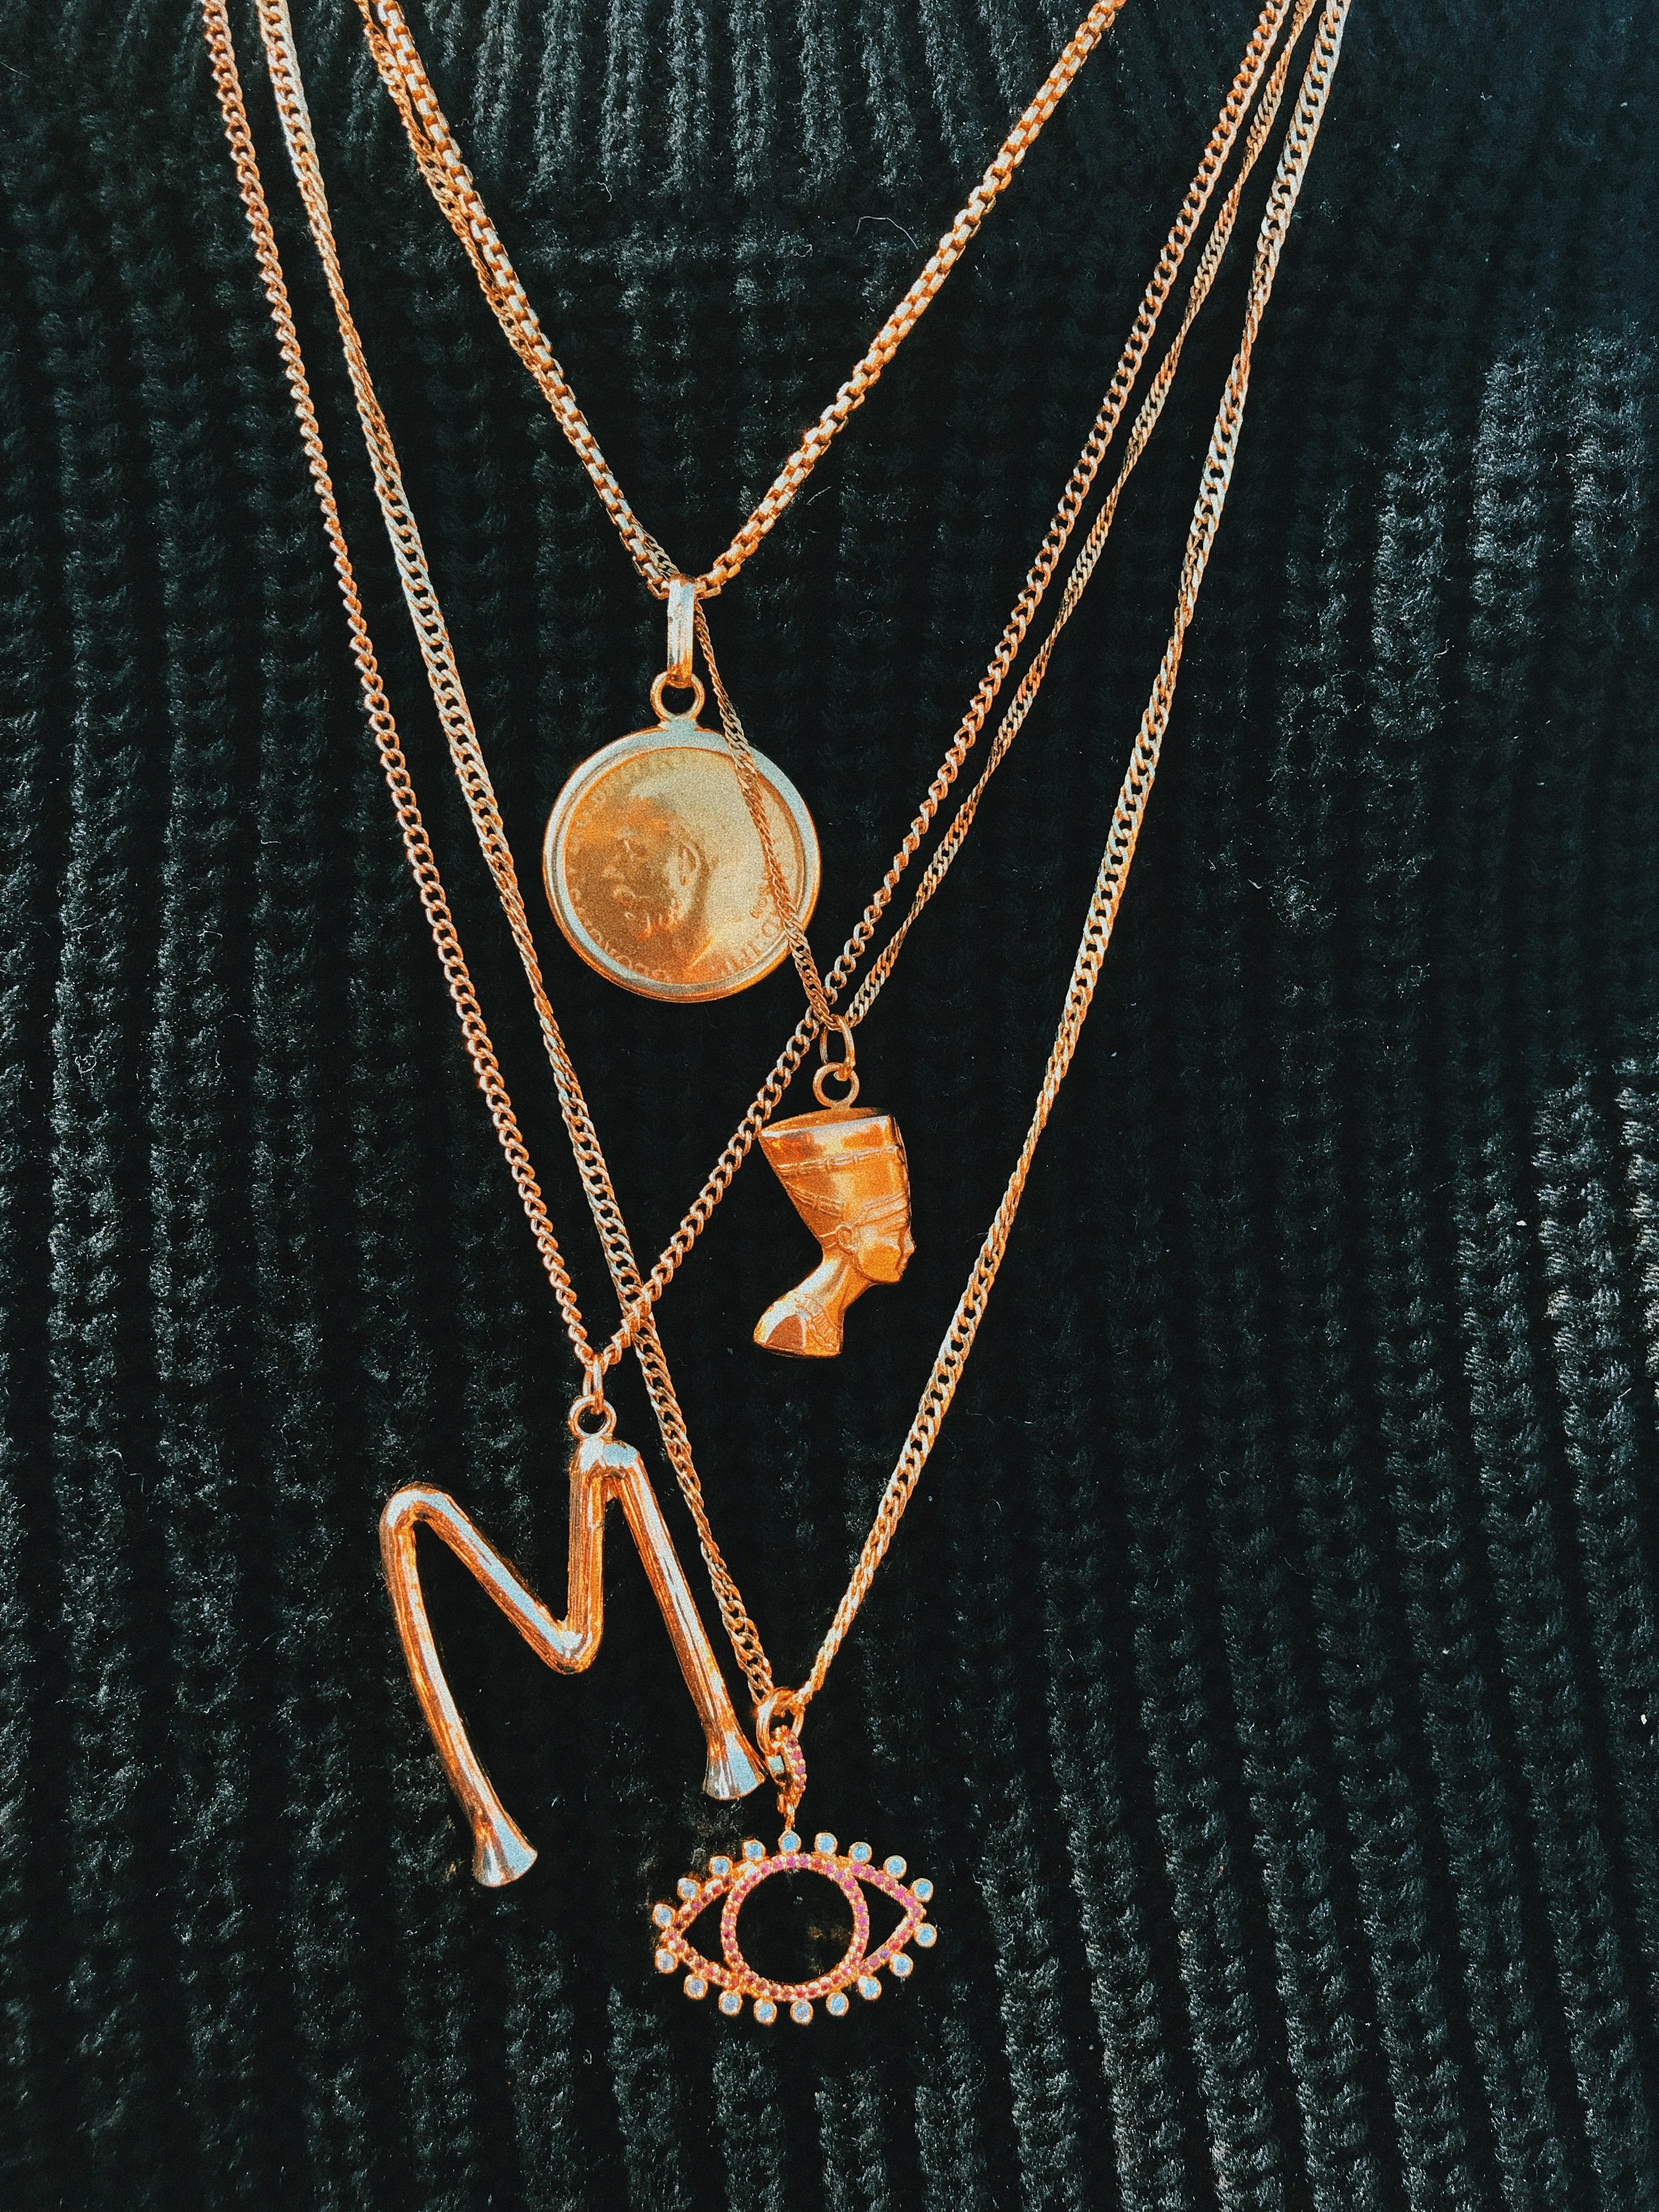 My Current Top 3 Jewelry Obsessions -